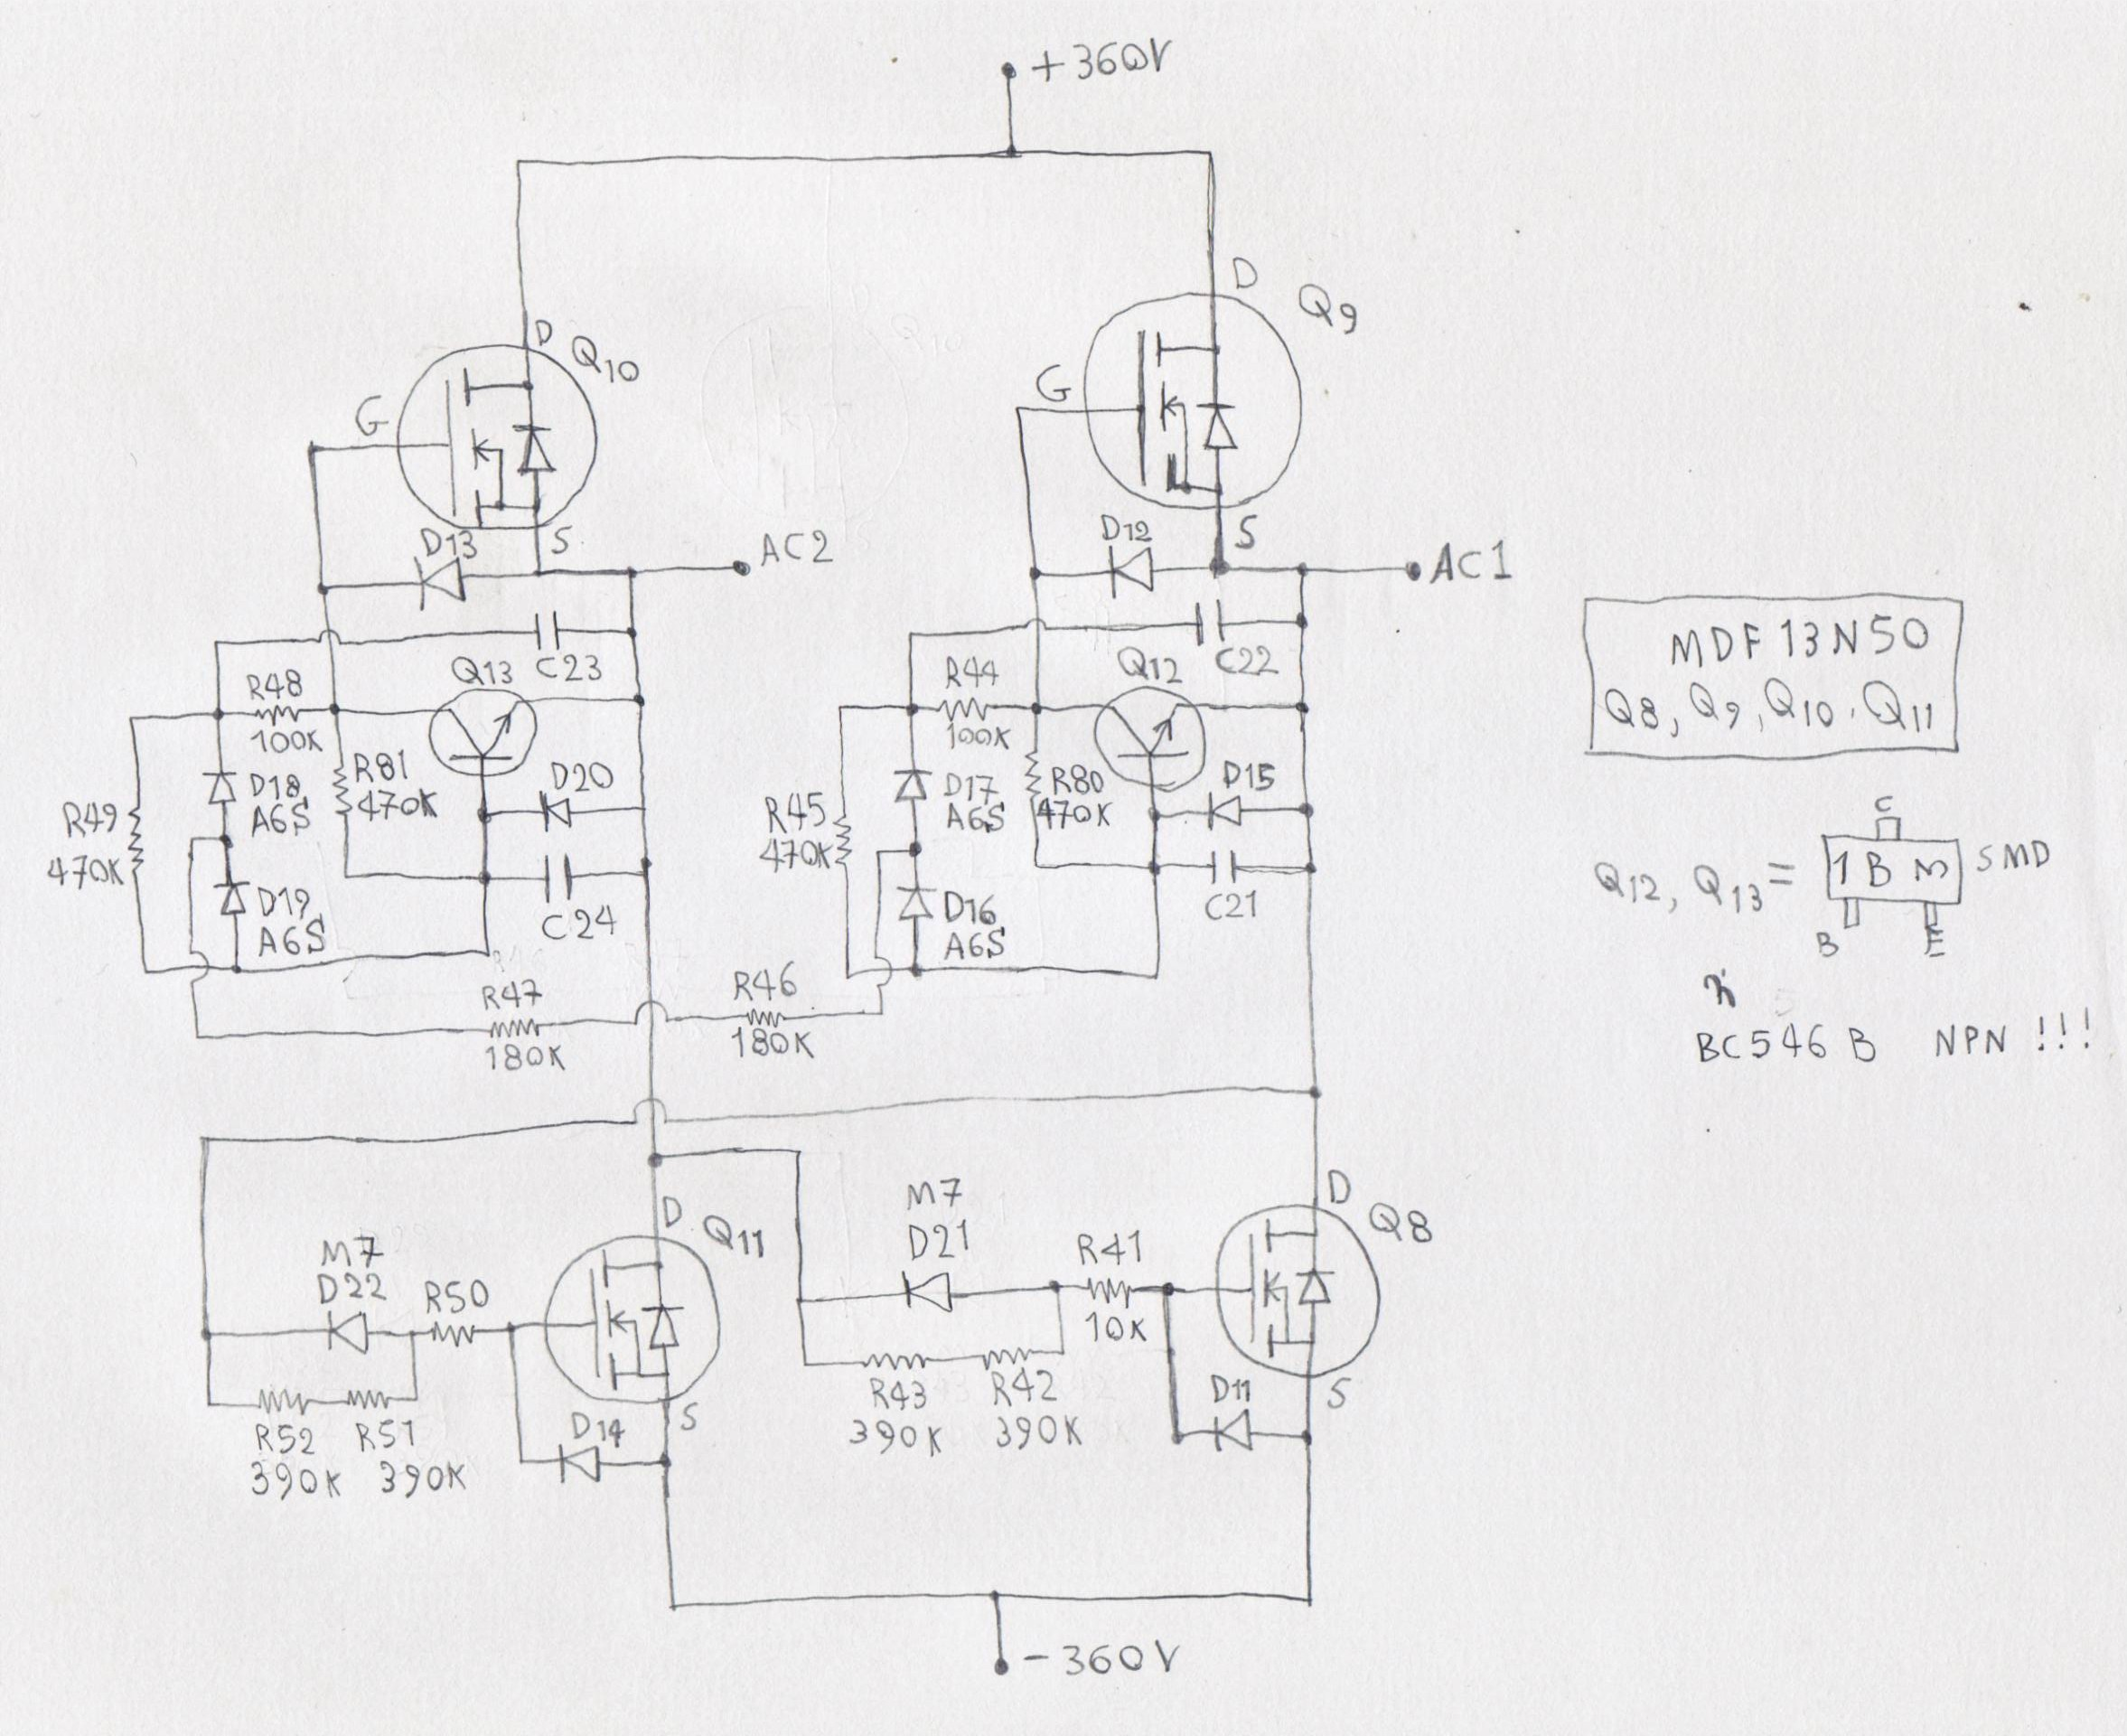 gm wiring diagram with Welder Plug Wiring Diagram on Tdi Throttle Position Sensor Location likewise Subaru Engine Number Location also 1999 Tahoe Power Mirror Wiring Diagram 306913 together with Potter Brumfield Relay Wiring Diagram in addition Transmission Line Drawings.